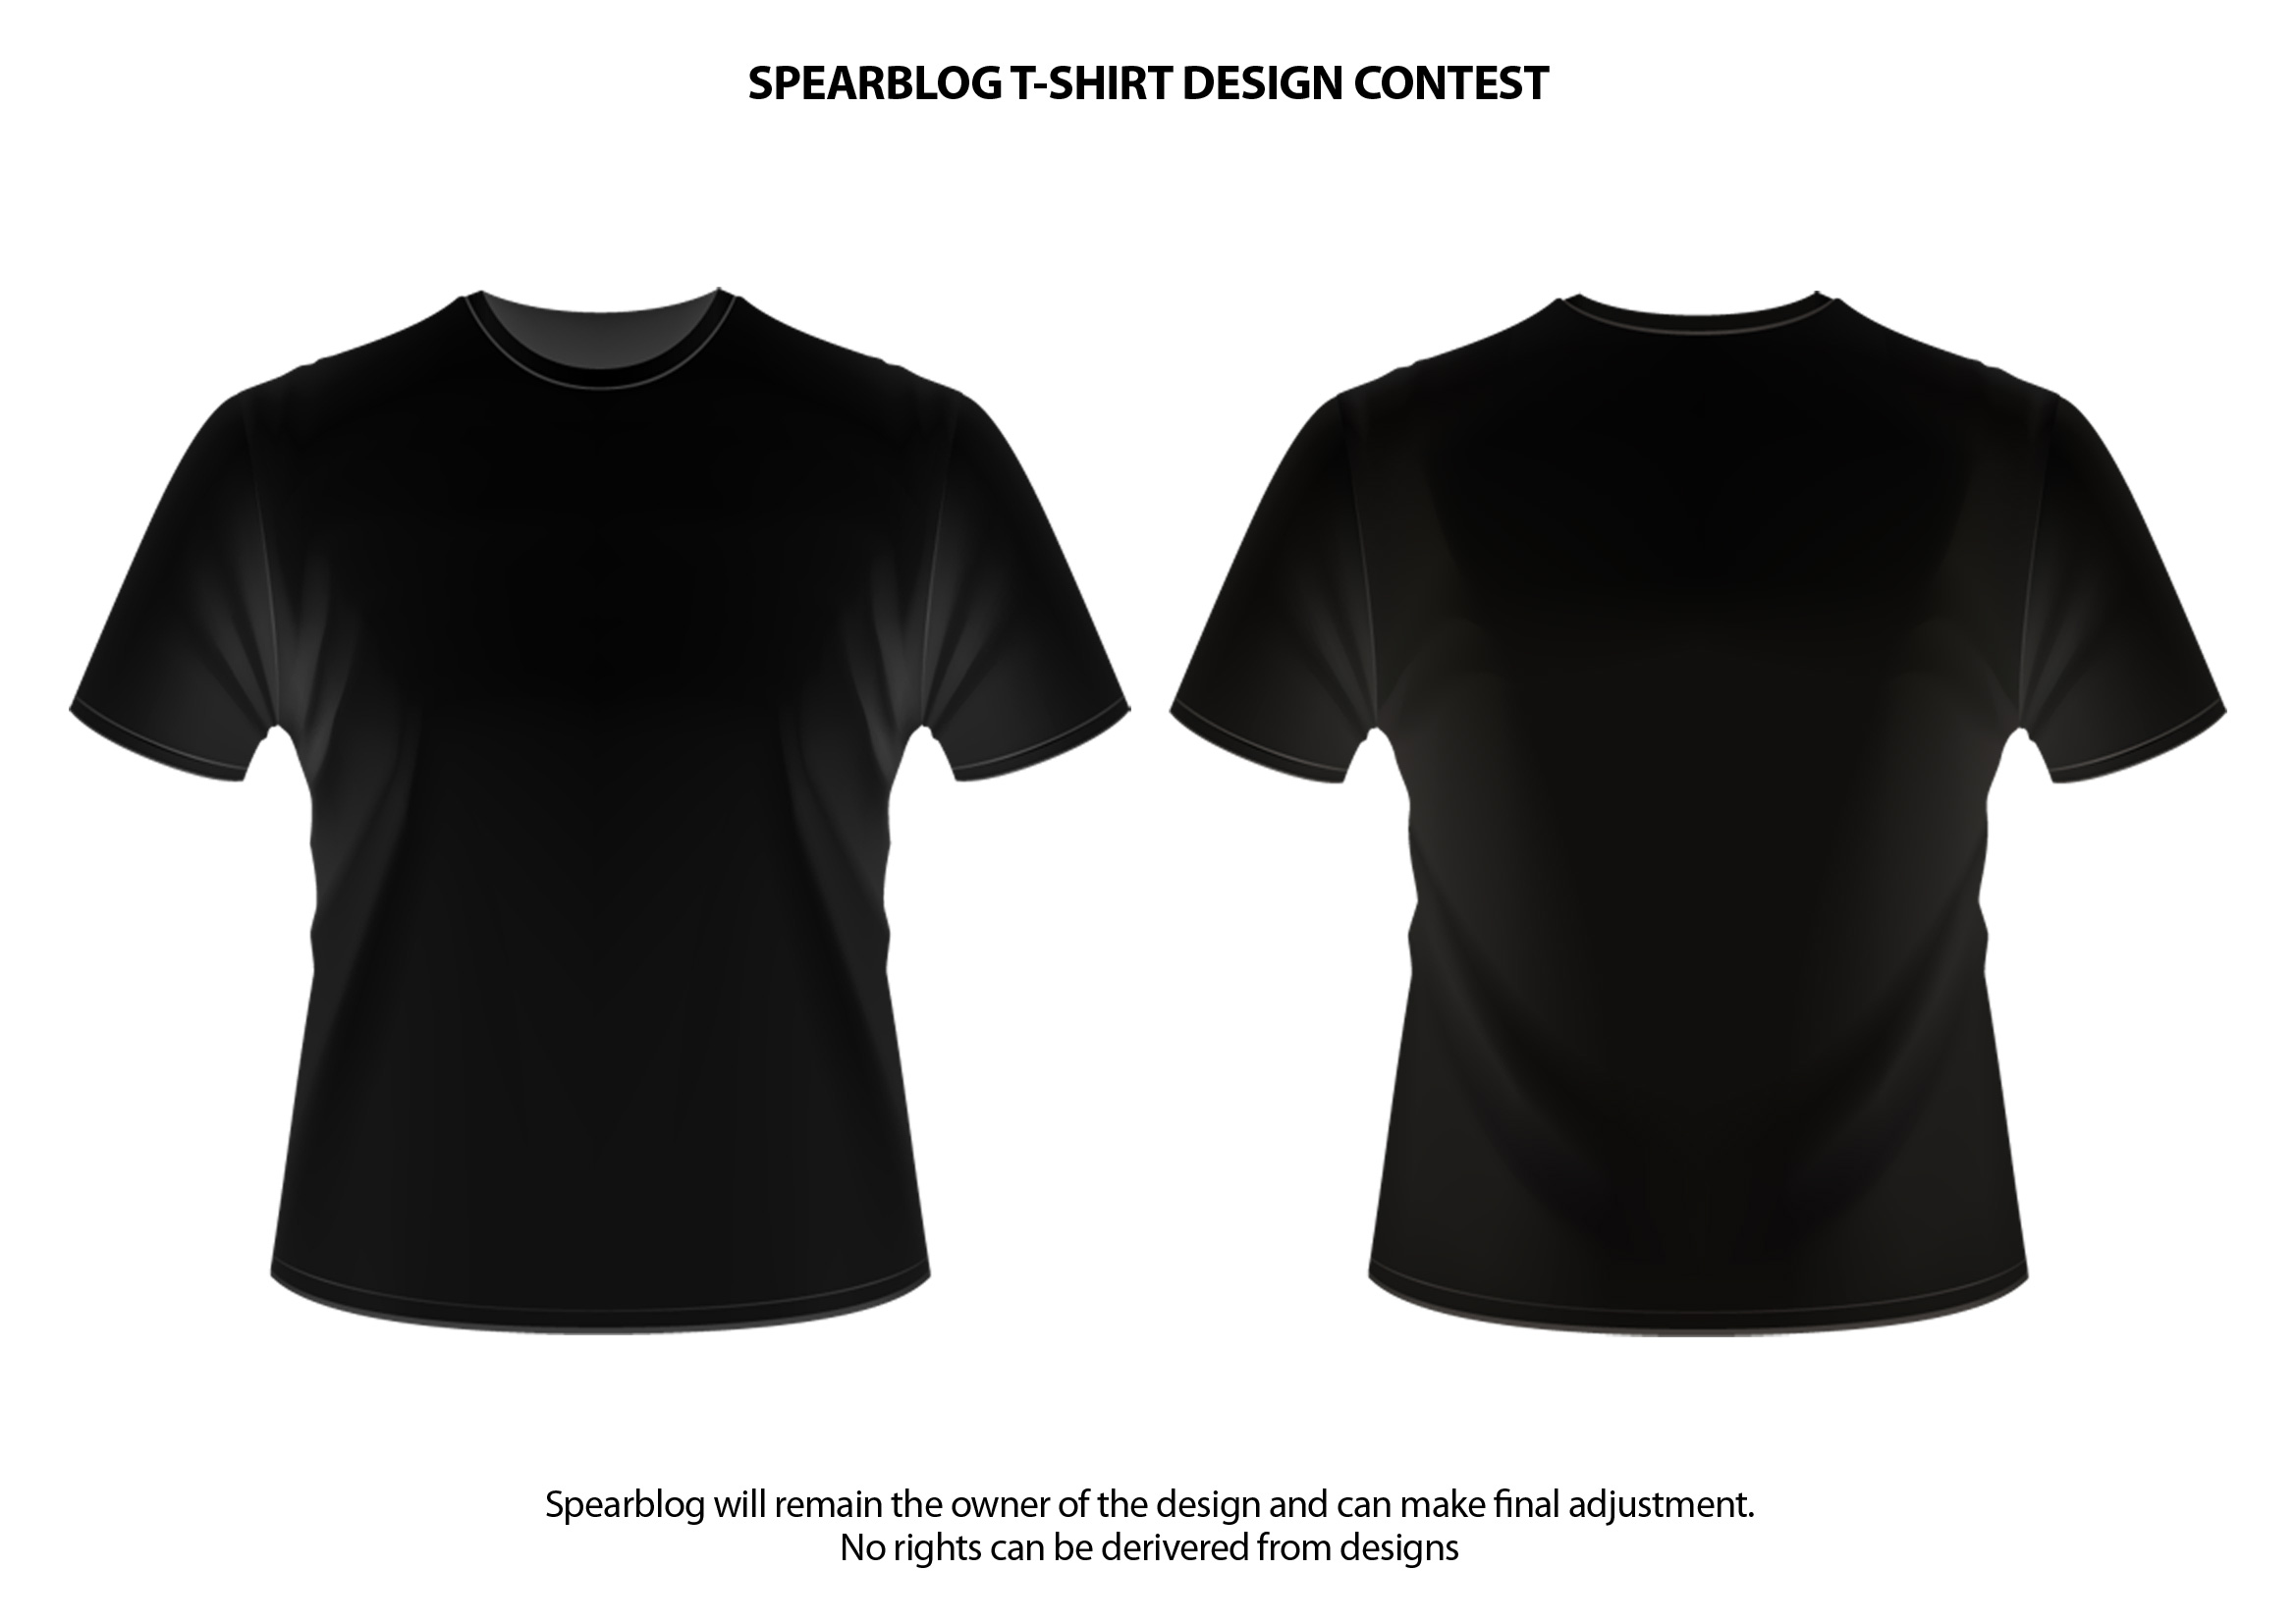 black t shirts template - photo #1